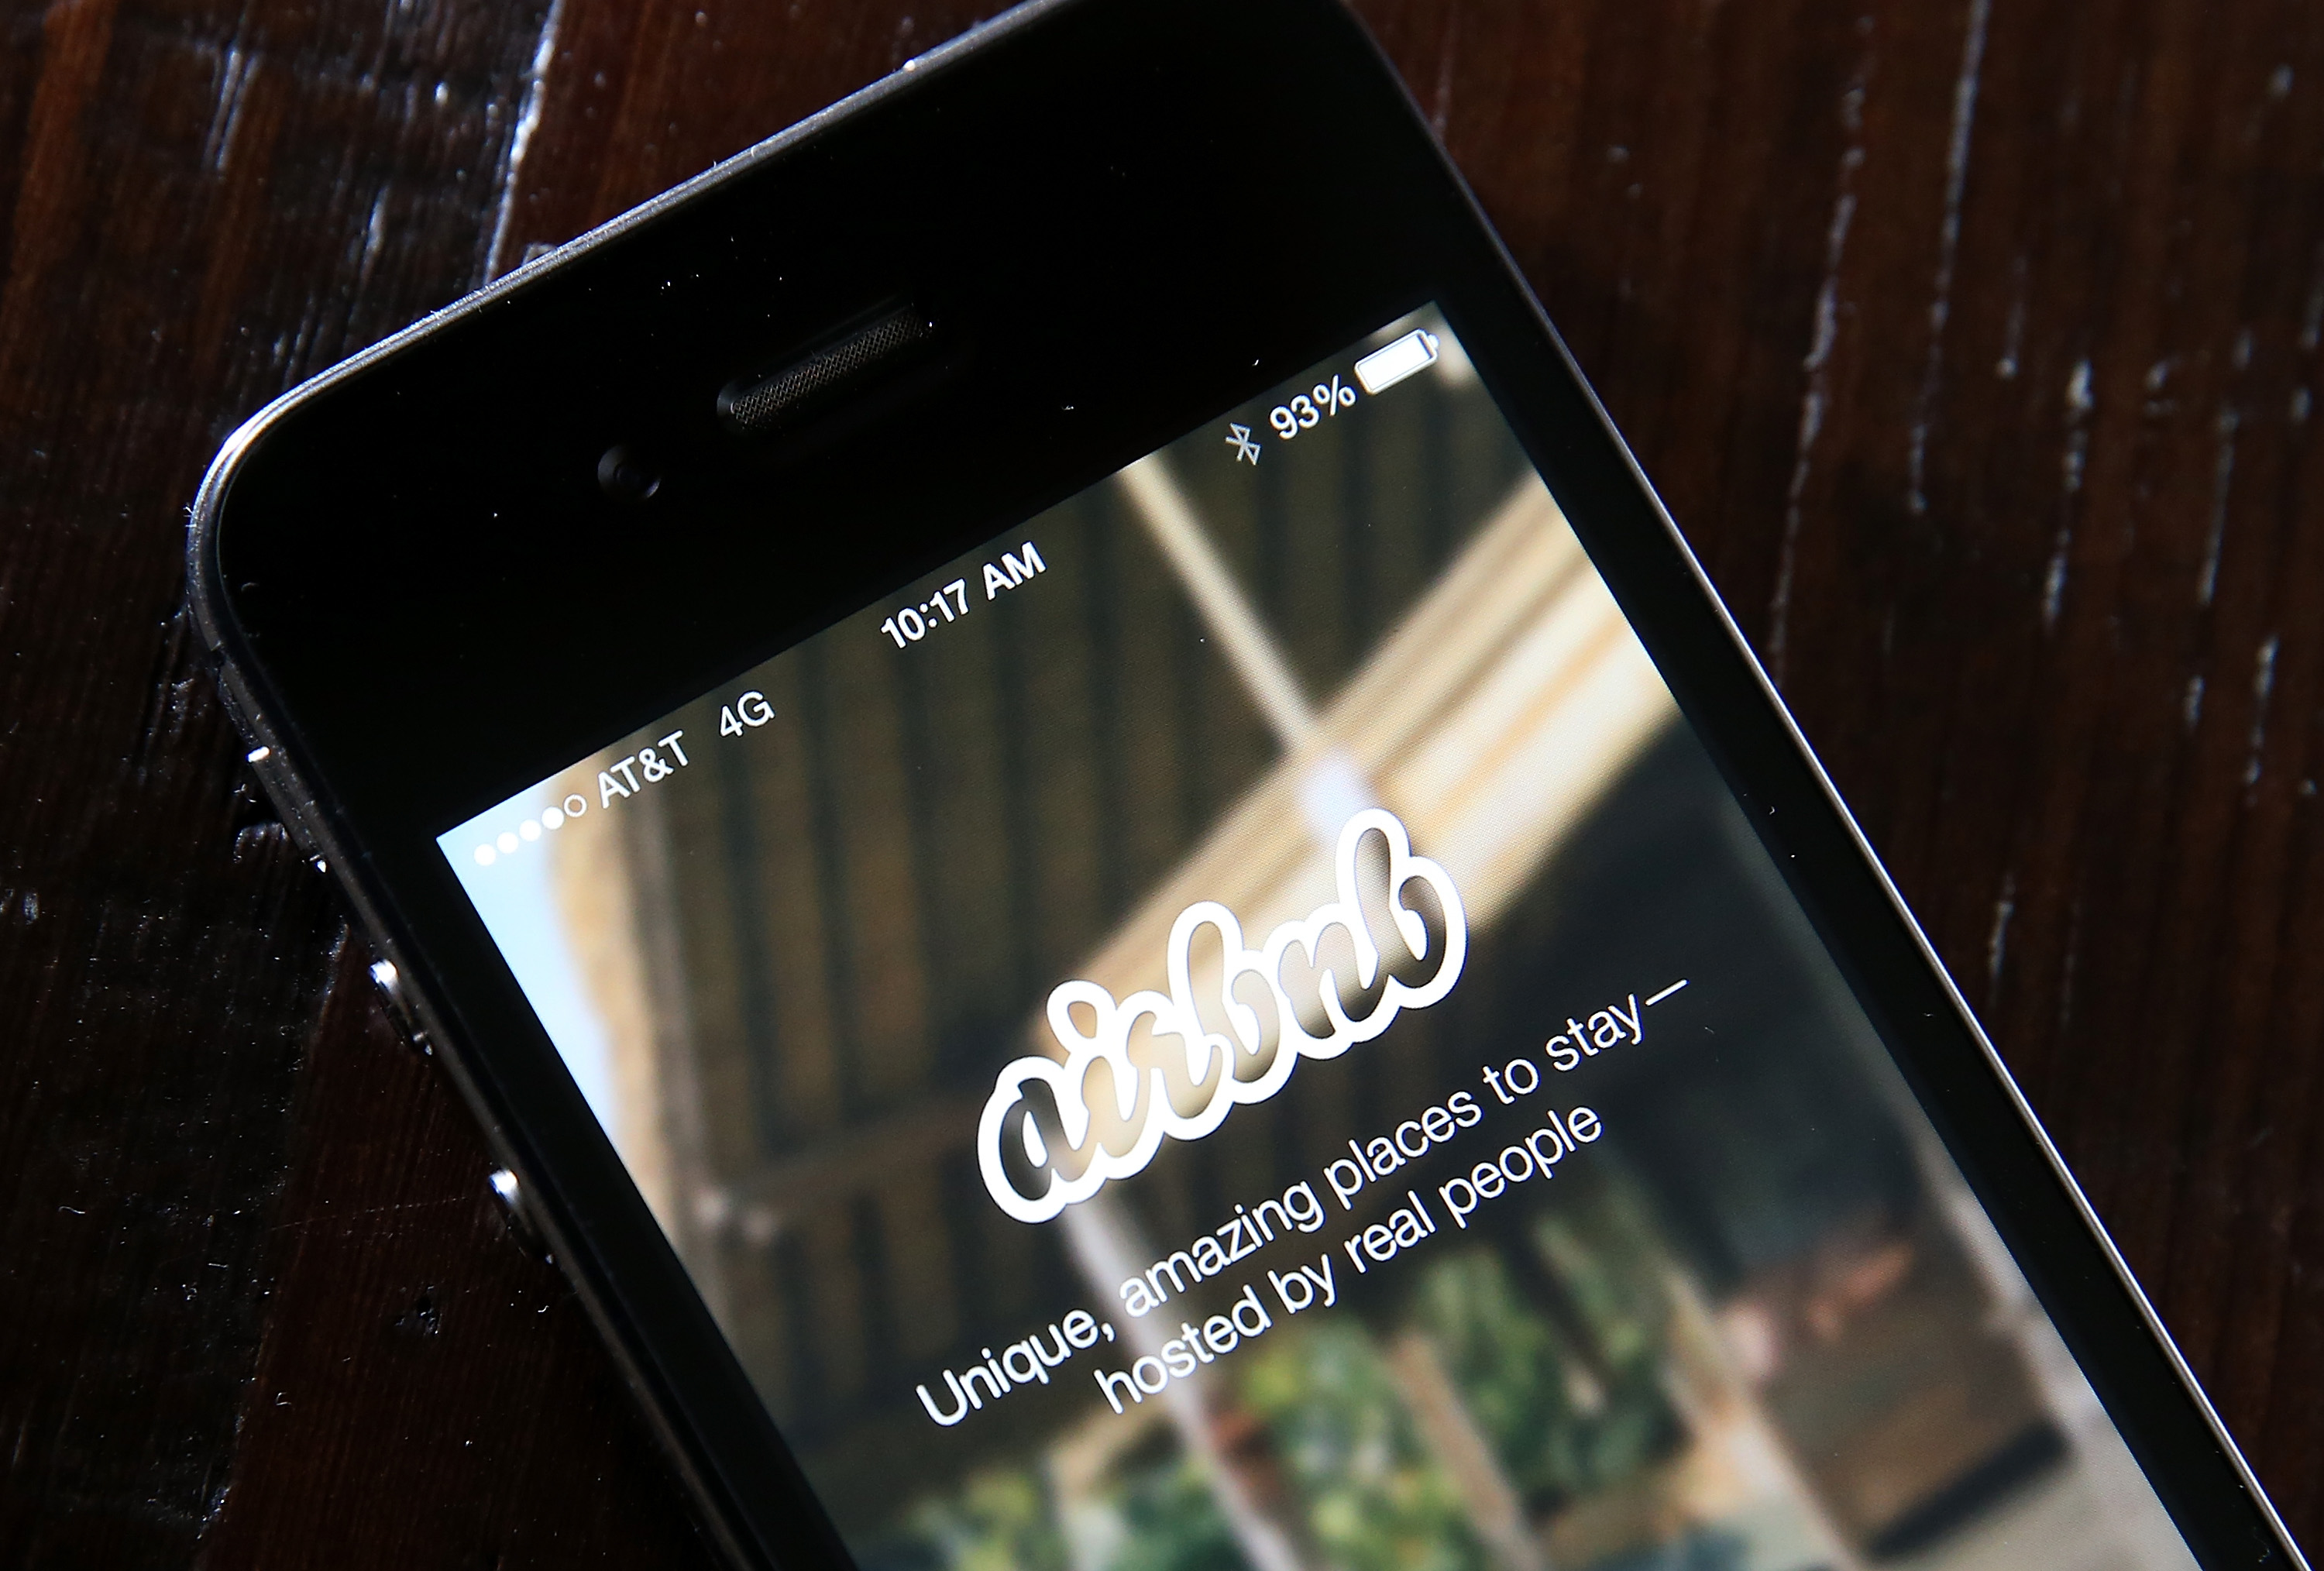 The Airbnb app on a phone